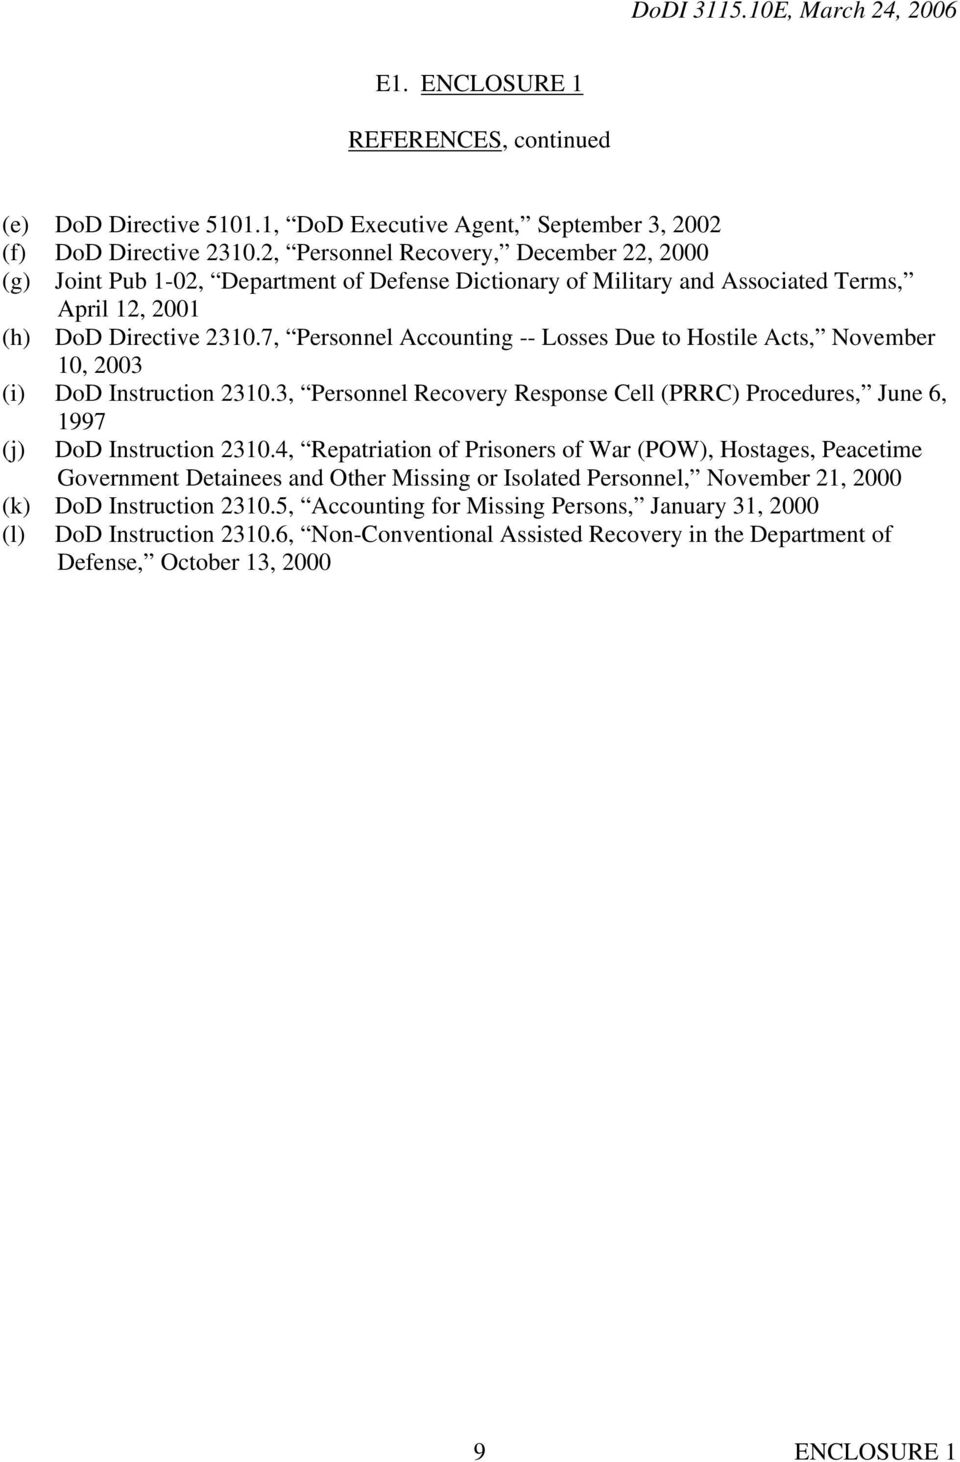 7, Personnel Accounting -- Losses Due to Hostile Acts, November 10, 2003 (i) DoD Instruction 2310.3, Personnel Recovery Response Cell (PRRC) Procedures, June 6, 1997 (j) DoD Instruction 2310.